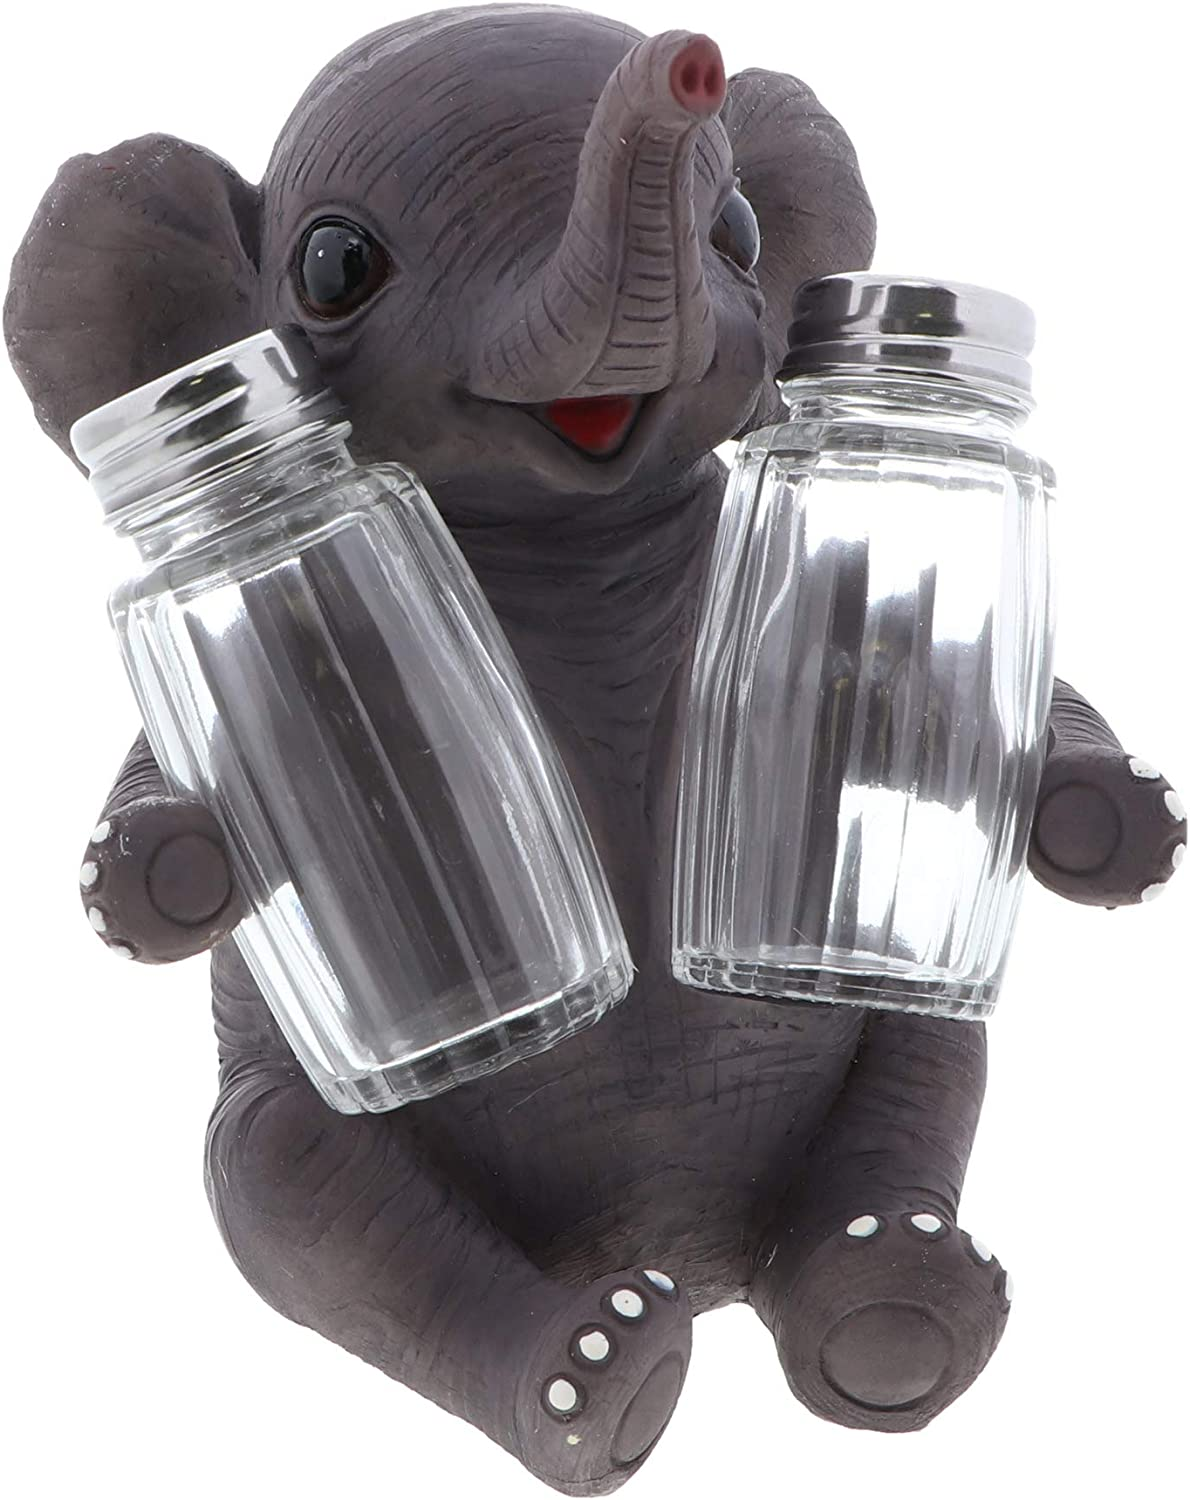 Jungle Animals Kitchen Décor Novelty Salt and Pepper Shaker Set with Holder  - Baby Elephant